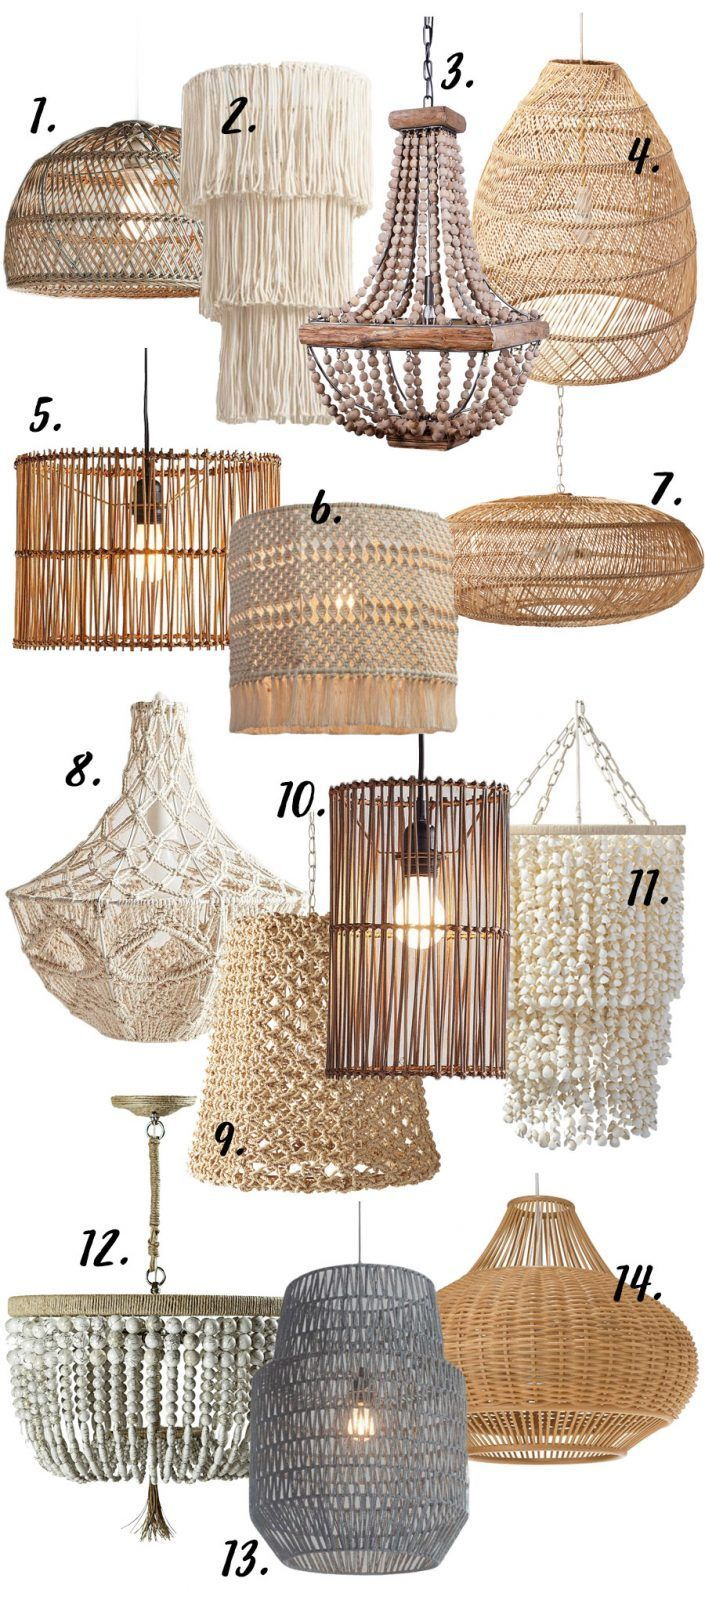 MODERNE BOHO CHANDELIERS & PENDANT LIGHTS - 14 CHIC OPTIONEN - #amp #Boho #CHANDELIERS #Chic #design #LIGHTS #moderne #OPTIONEN #PENDANT #decoratingsmalllivingroom